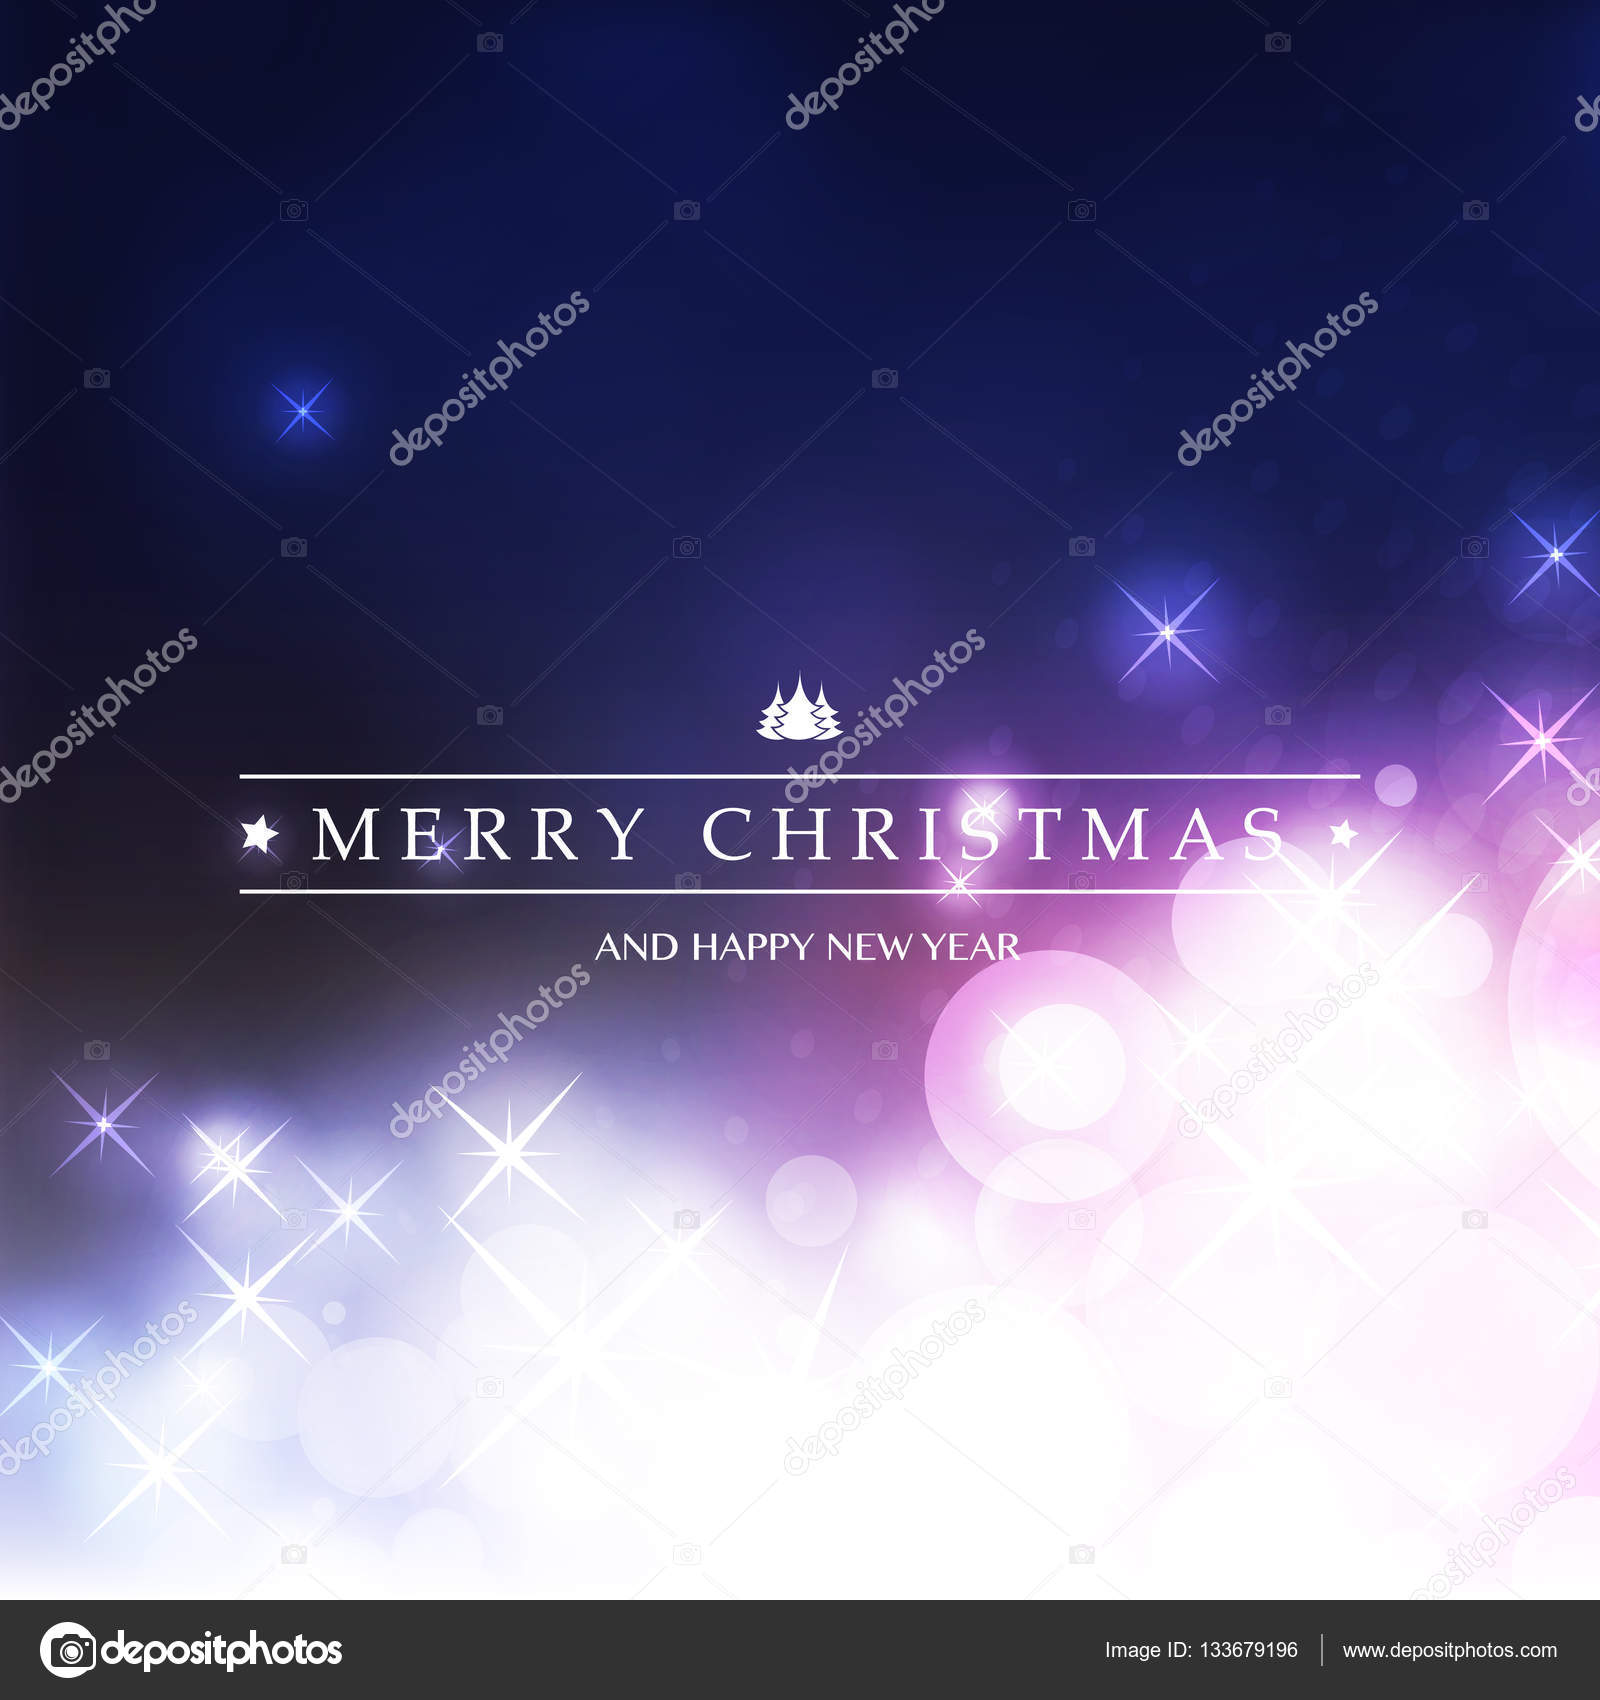 Colorful happy holidays merry christmas and new year greeting card colorful happy holidays merry christmas and new year greeting card with label on a sparkling m4hsunfo